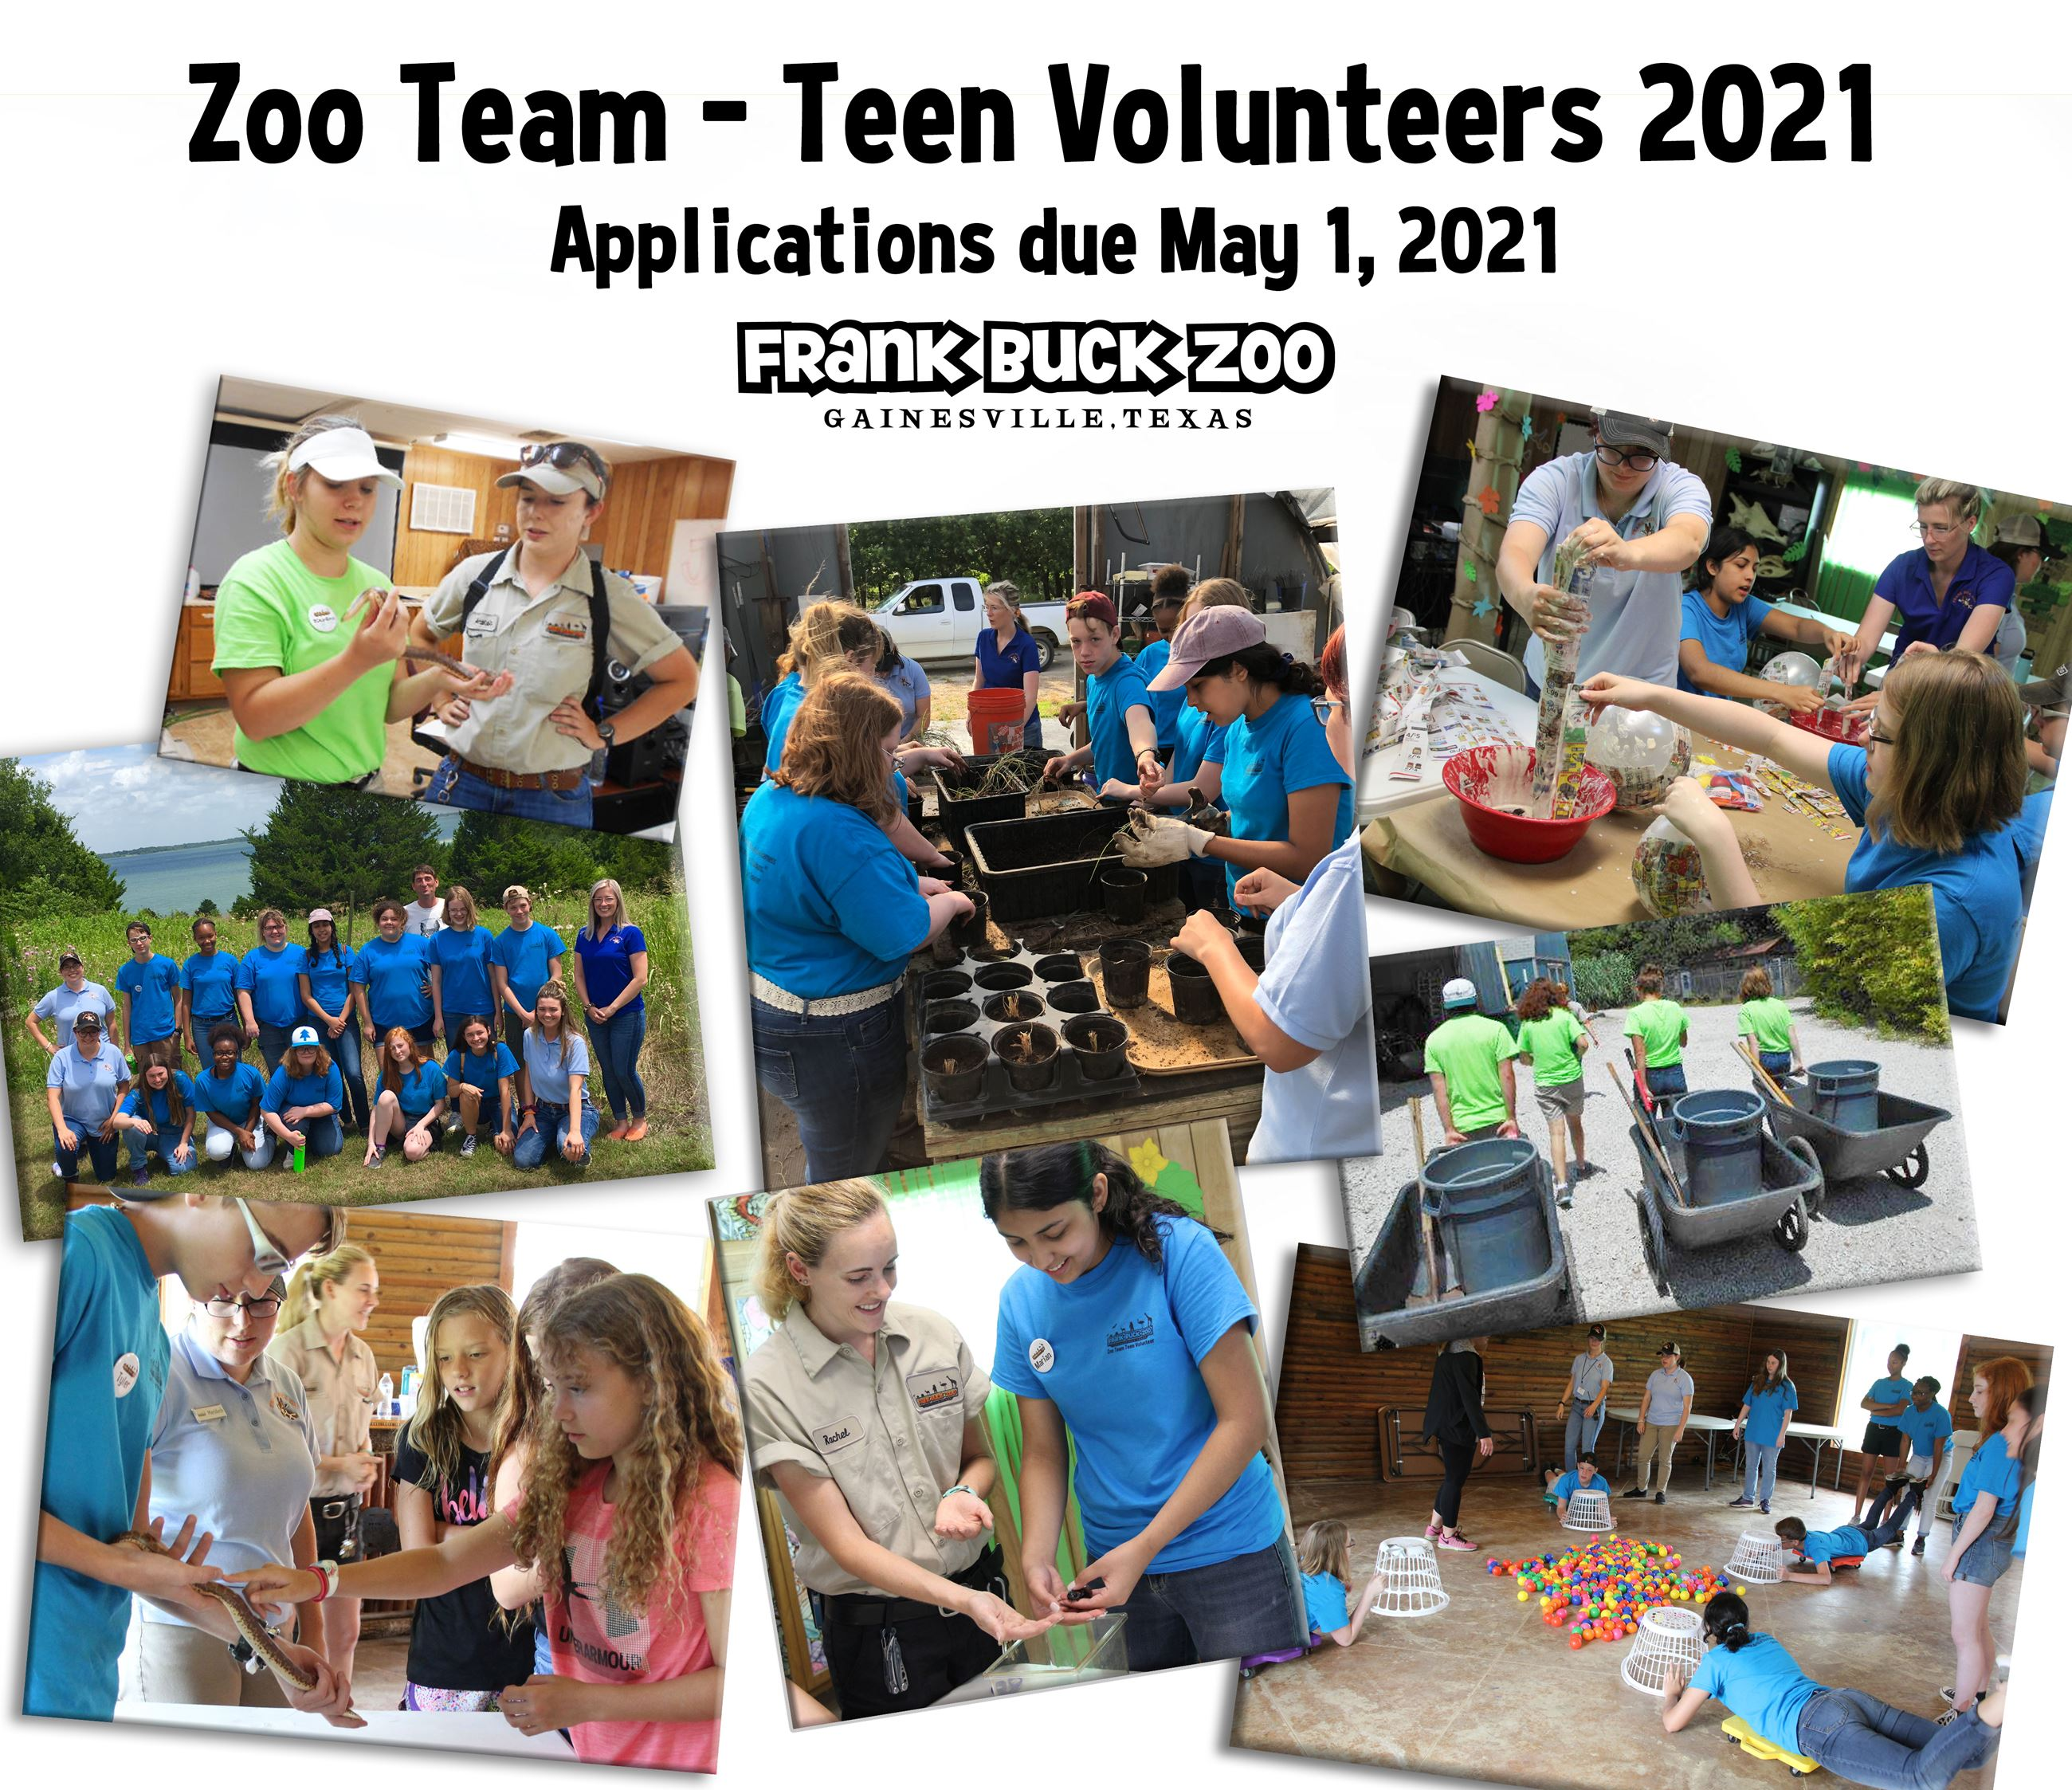 Zoo Team Flyer with Pictures of Zoo Team Activities